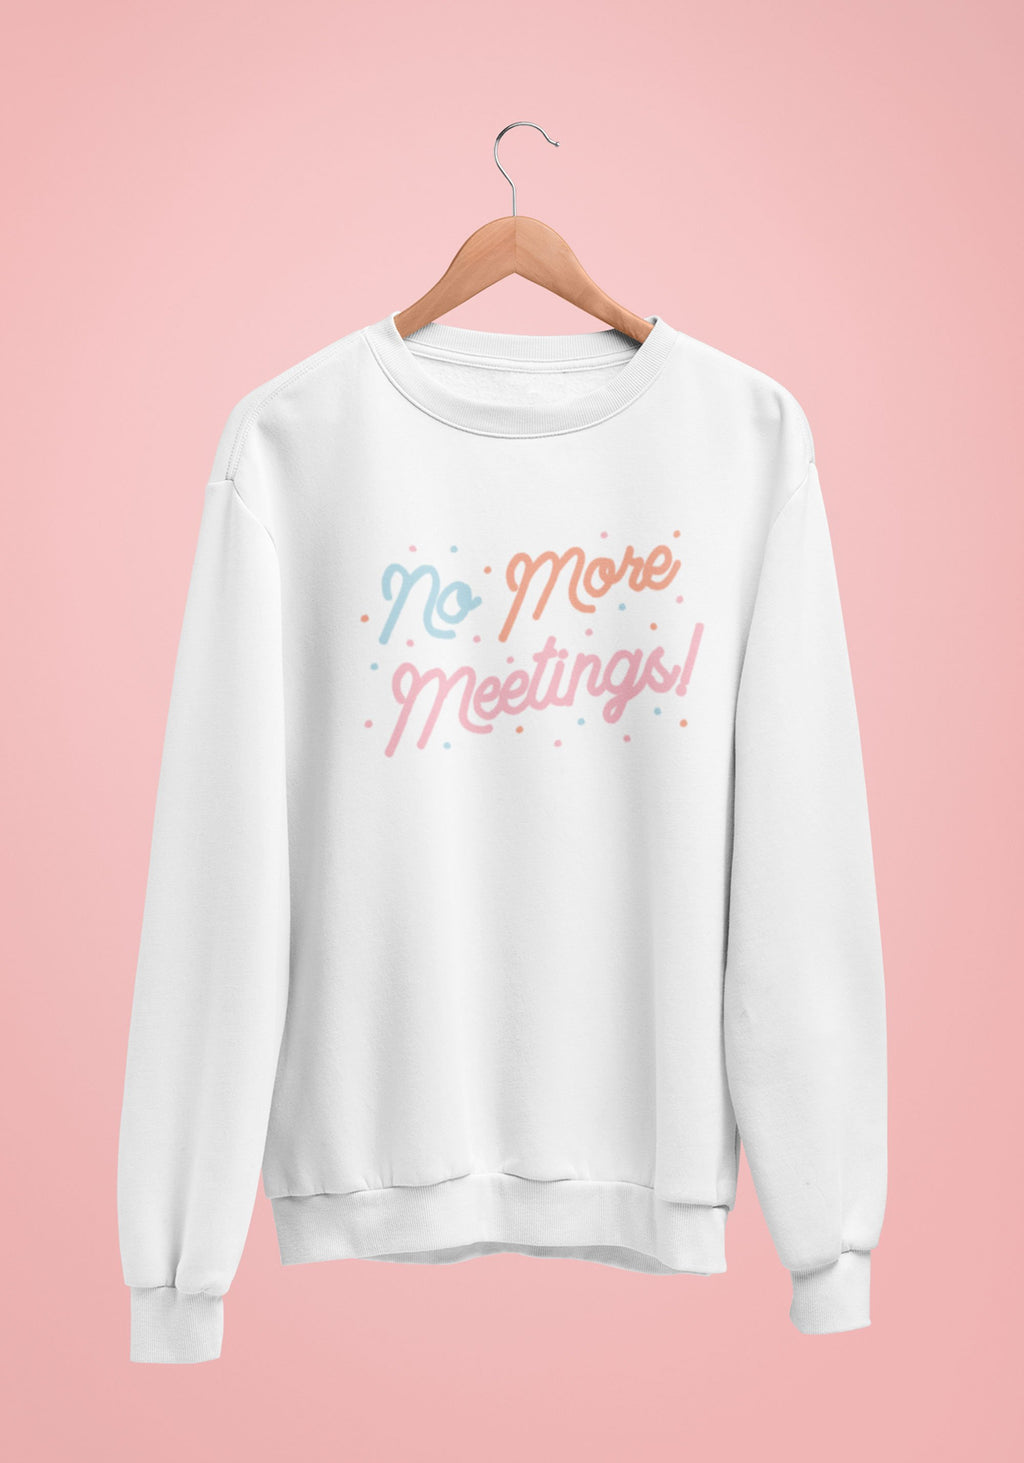 No More Meetings Sweatshirt / womens graphic sweatshirts / girl gang office work humor / cute cozy winter gear / bff gifts tv show sweater